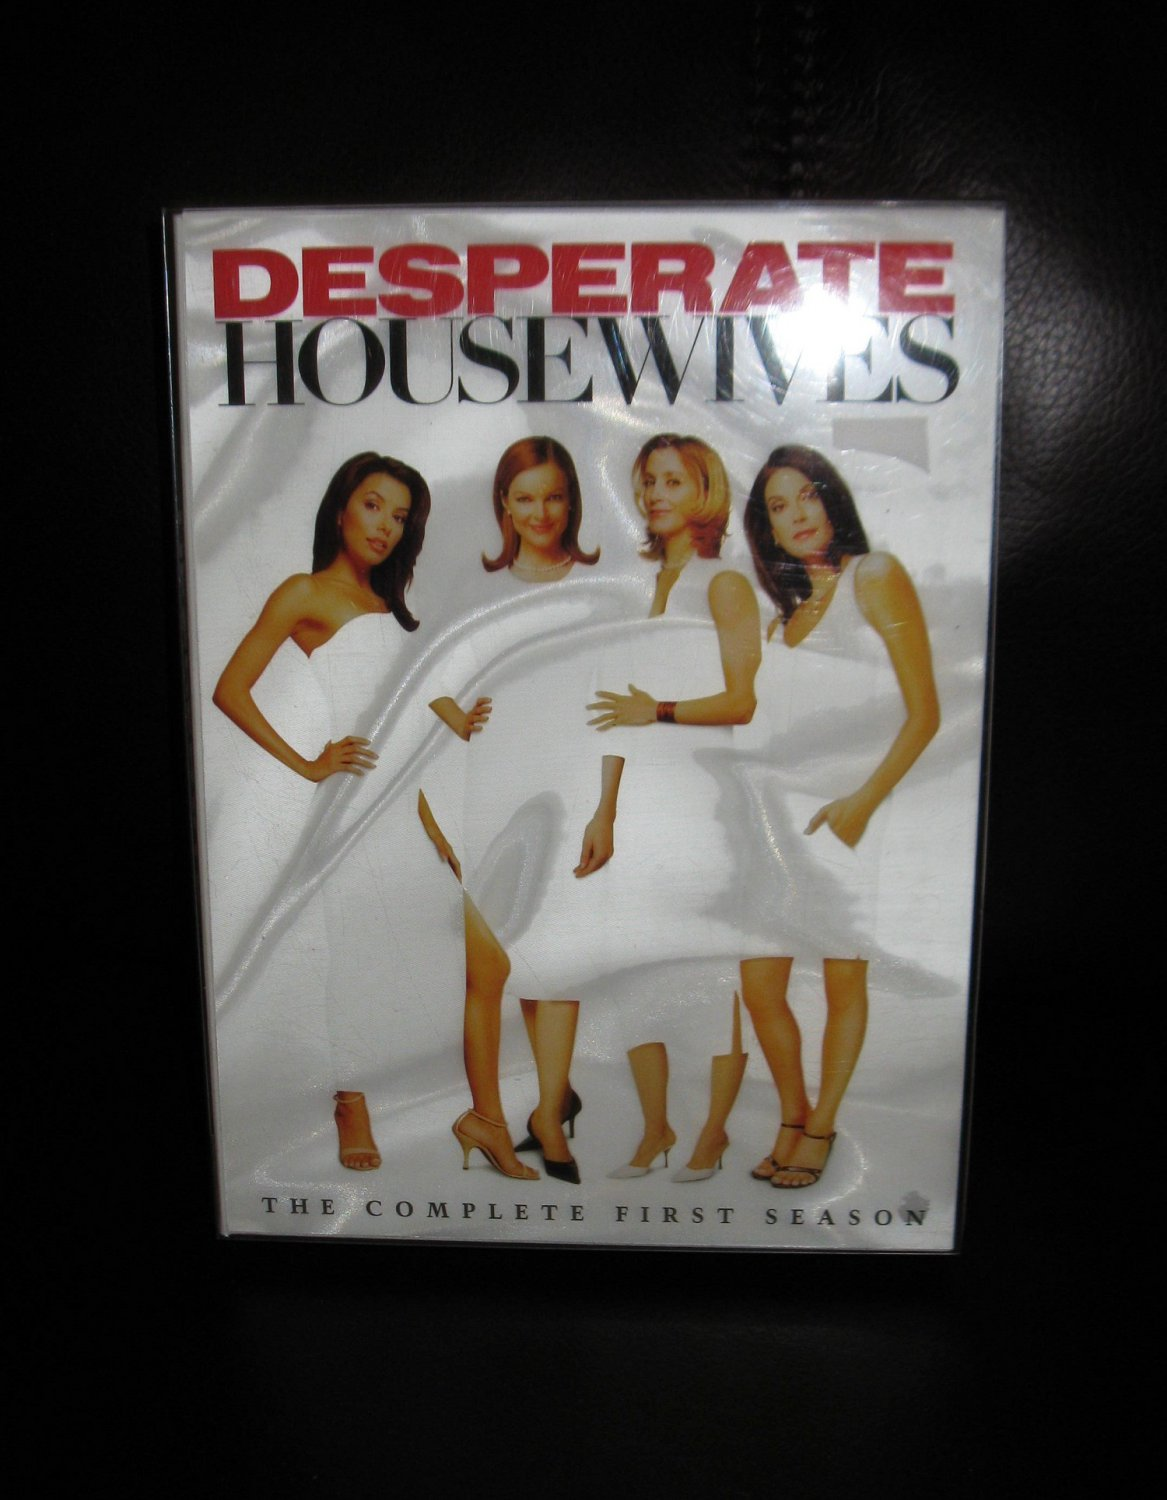 Desperate Housewives - The Complete First Season (DVD, 2005, 6-Disc Set) #T166